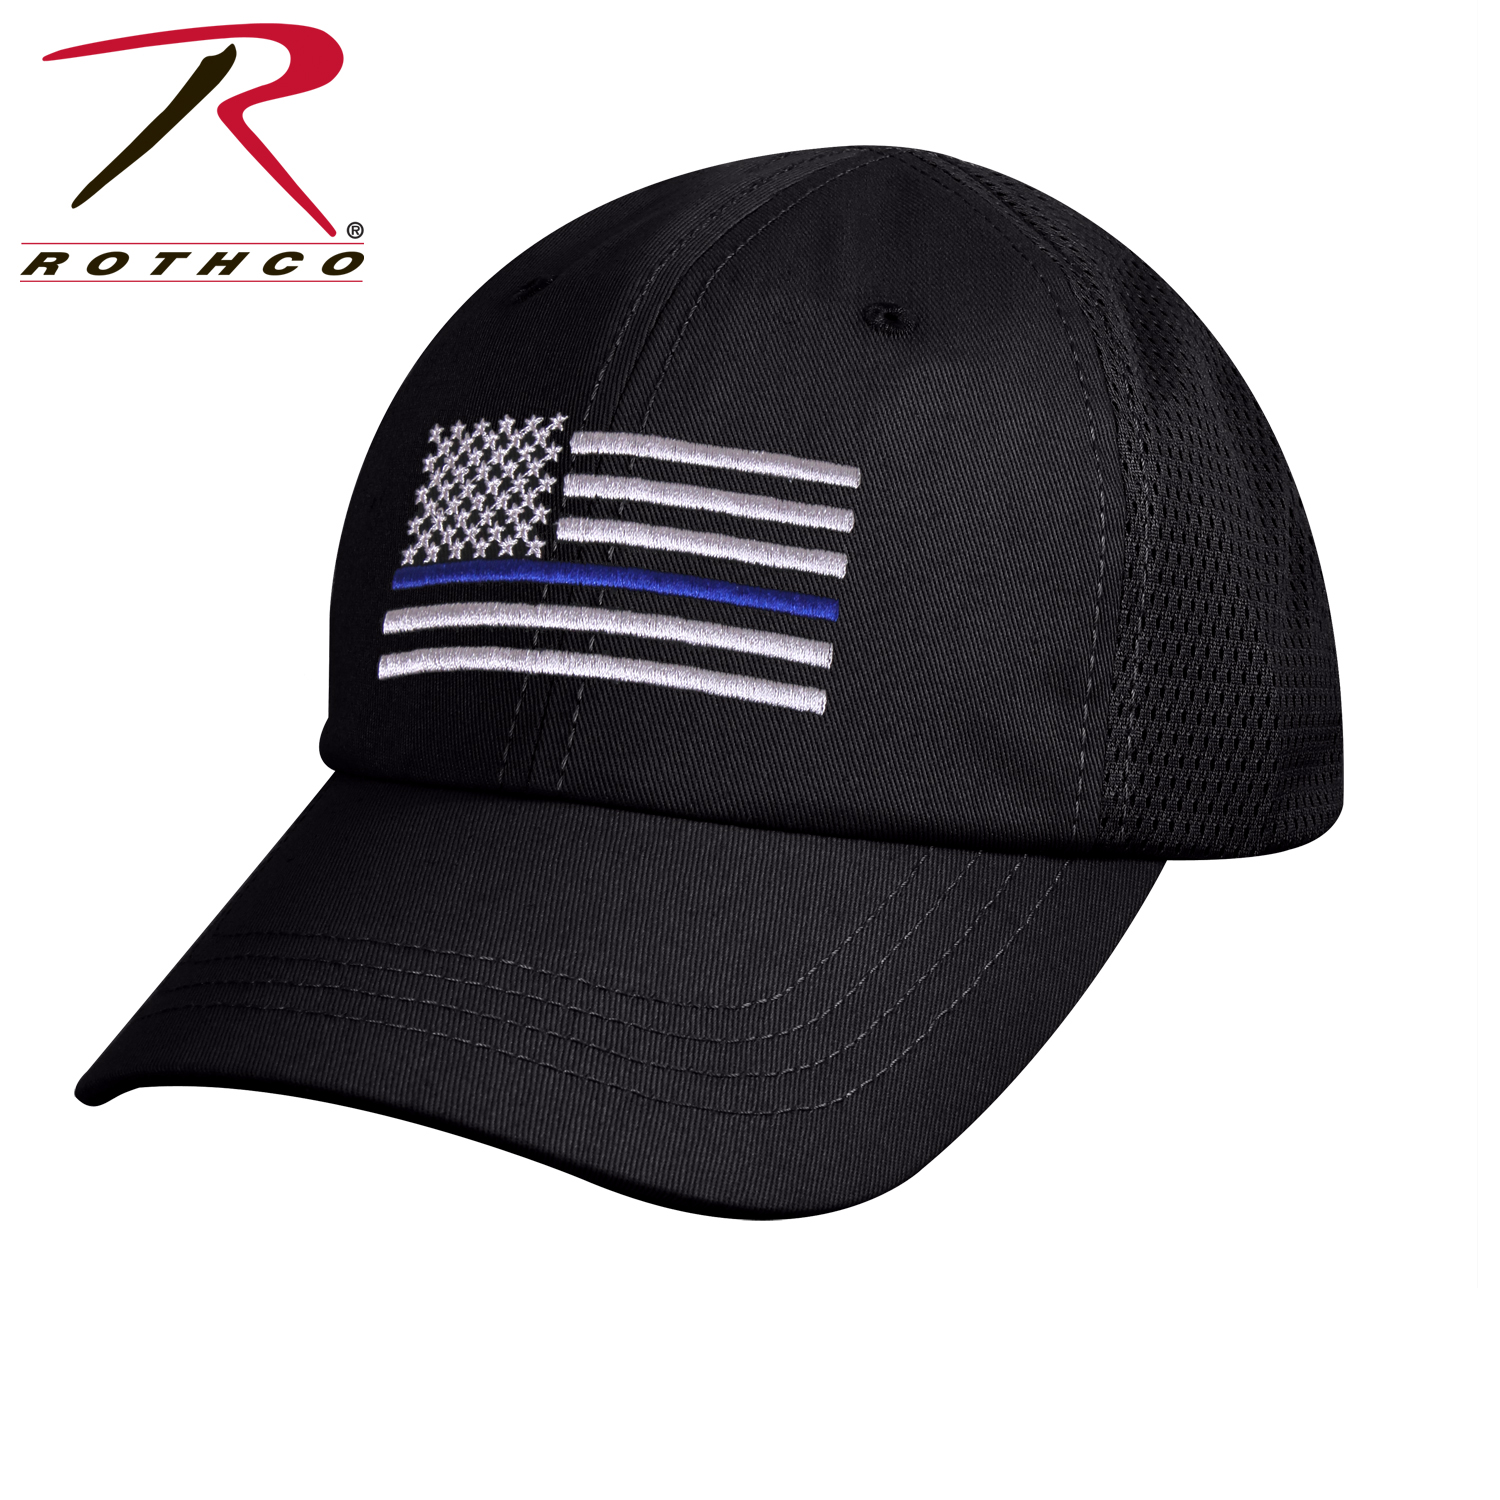 657c0c466 Rothco Tactical Mesh Back Cap With Thin Blue Line Flag